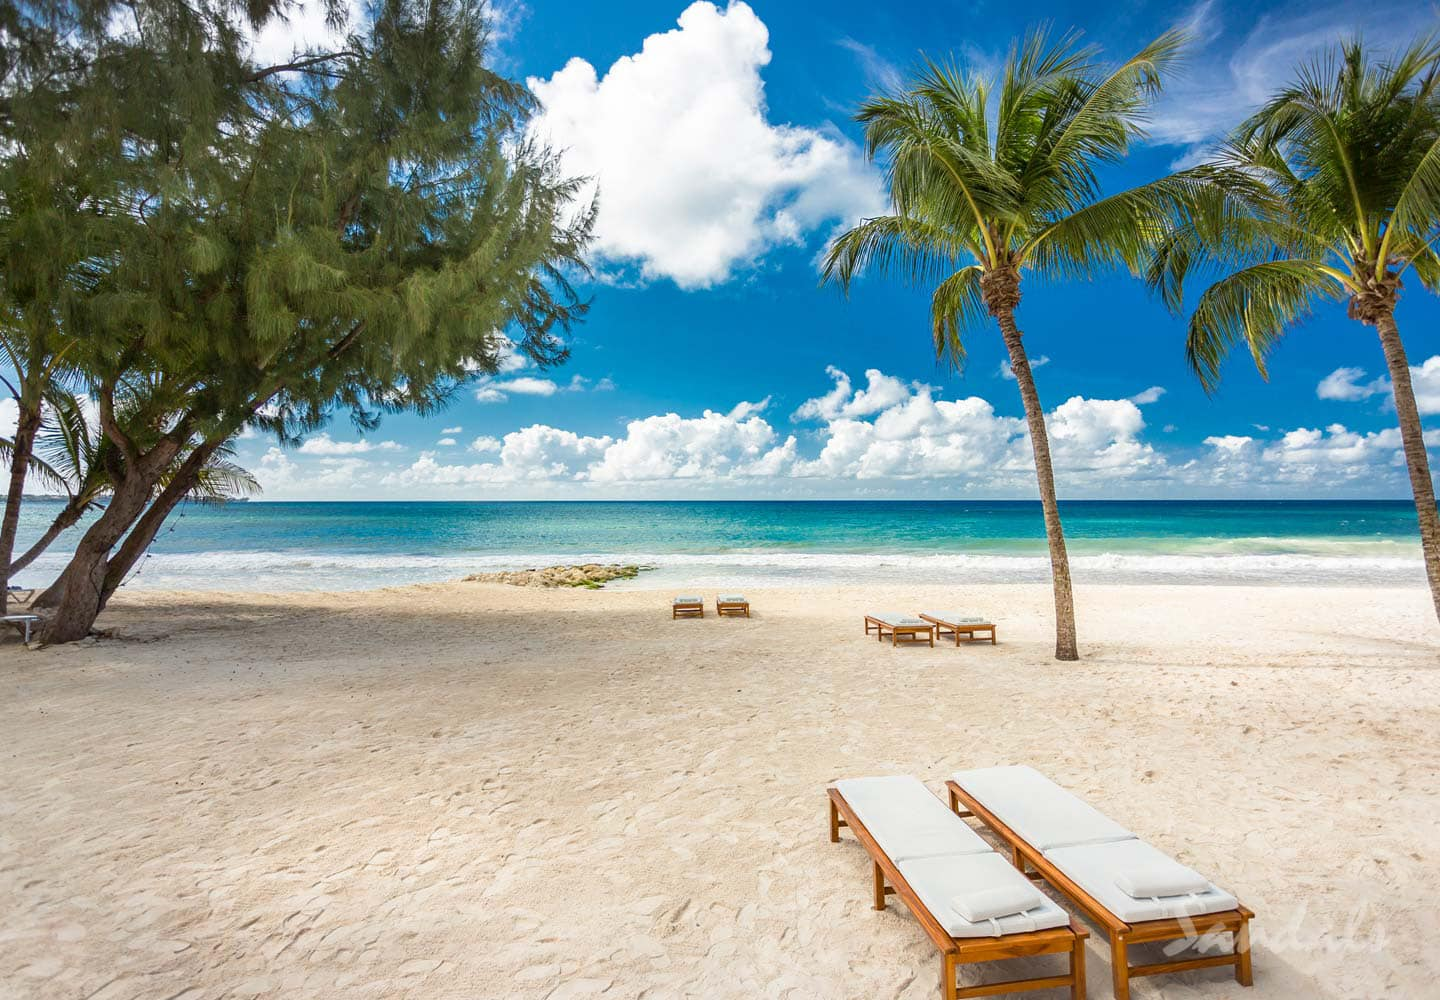 sandy beach and blue water at the Sandals Barbados Resort, well-known for luxury all inclusive vacations adults only, planned by Southern Travel Agency Augusta GA